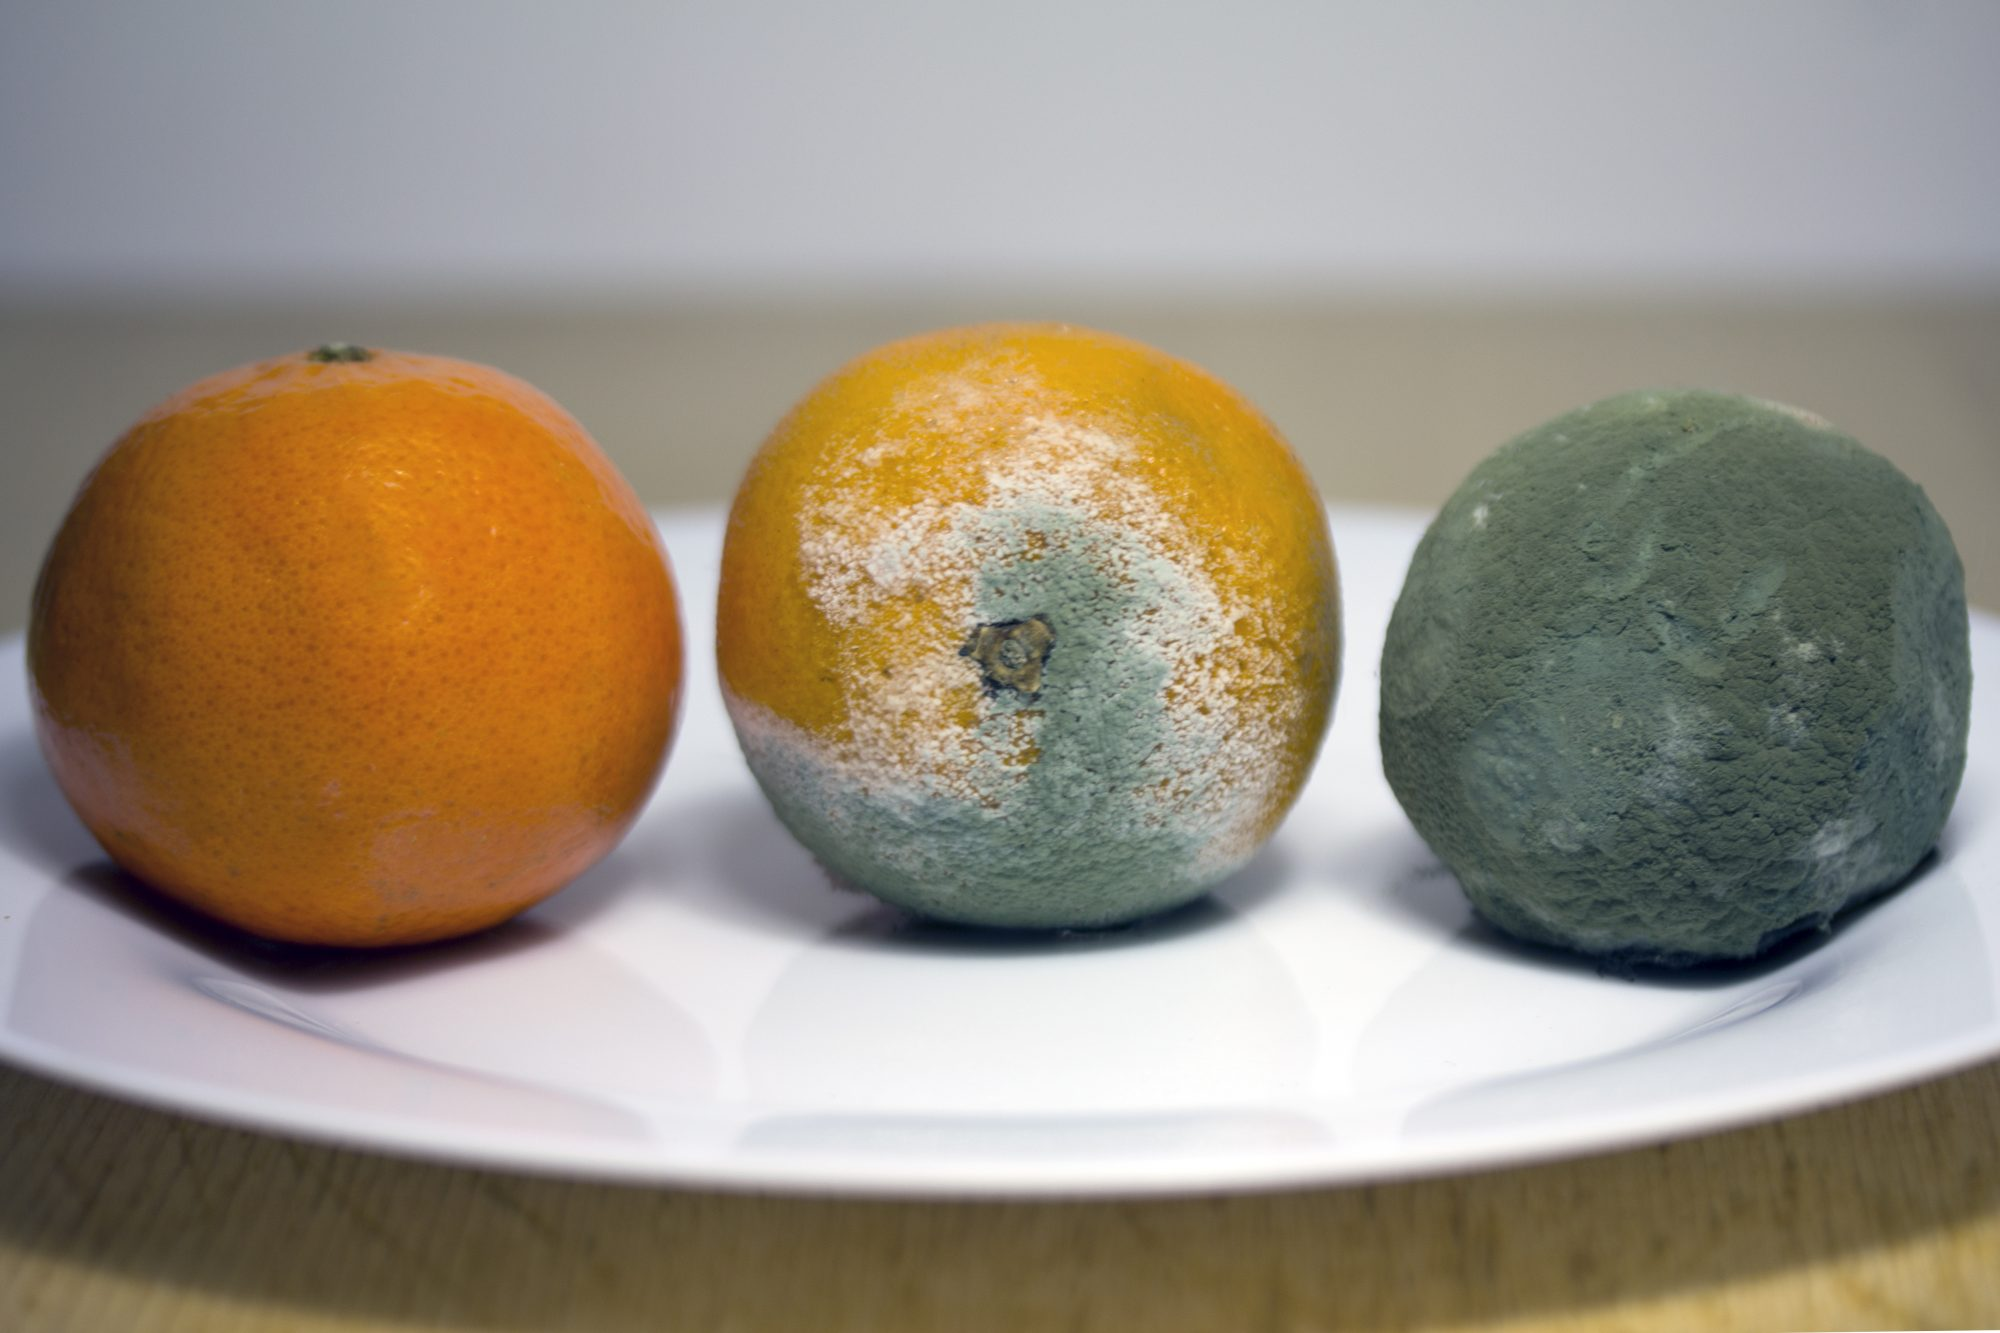 Moldy Oranges Getty 2/18/20